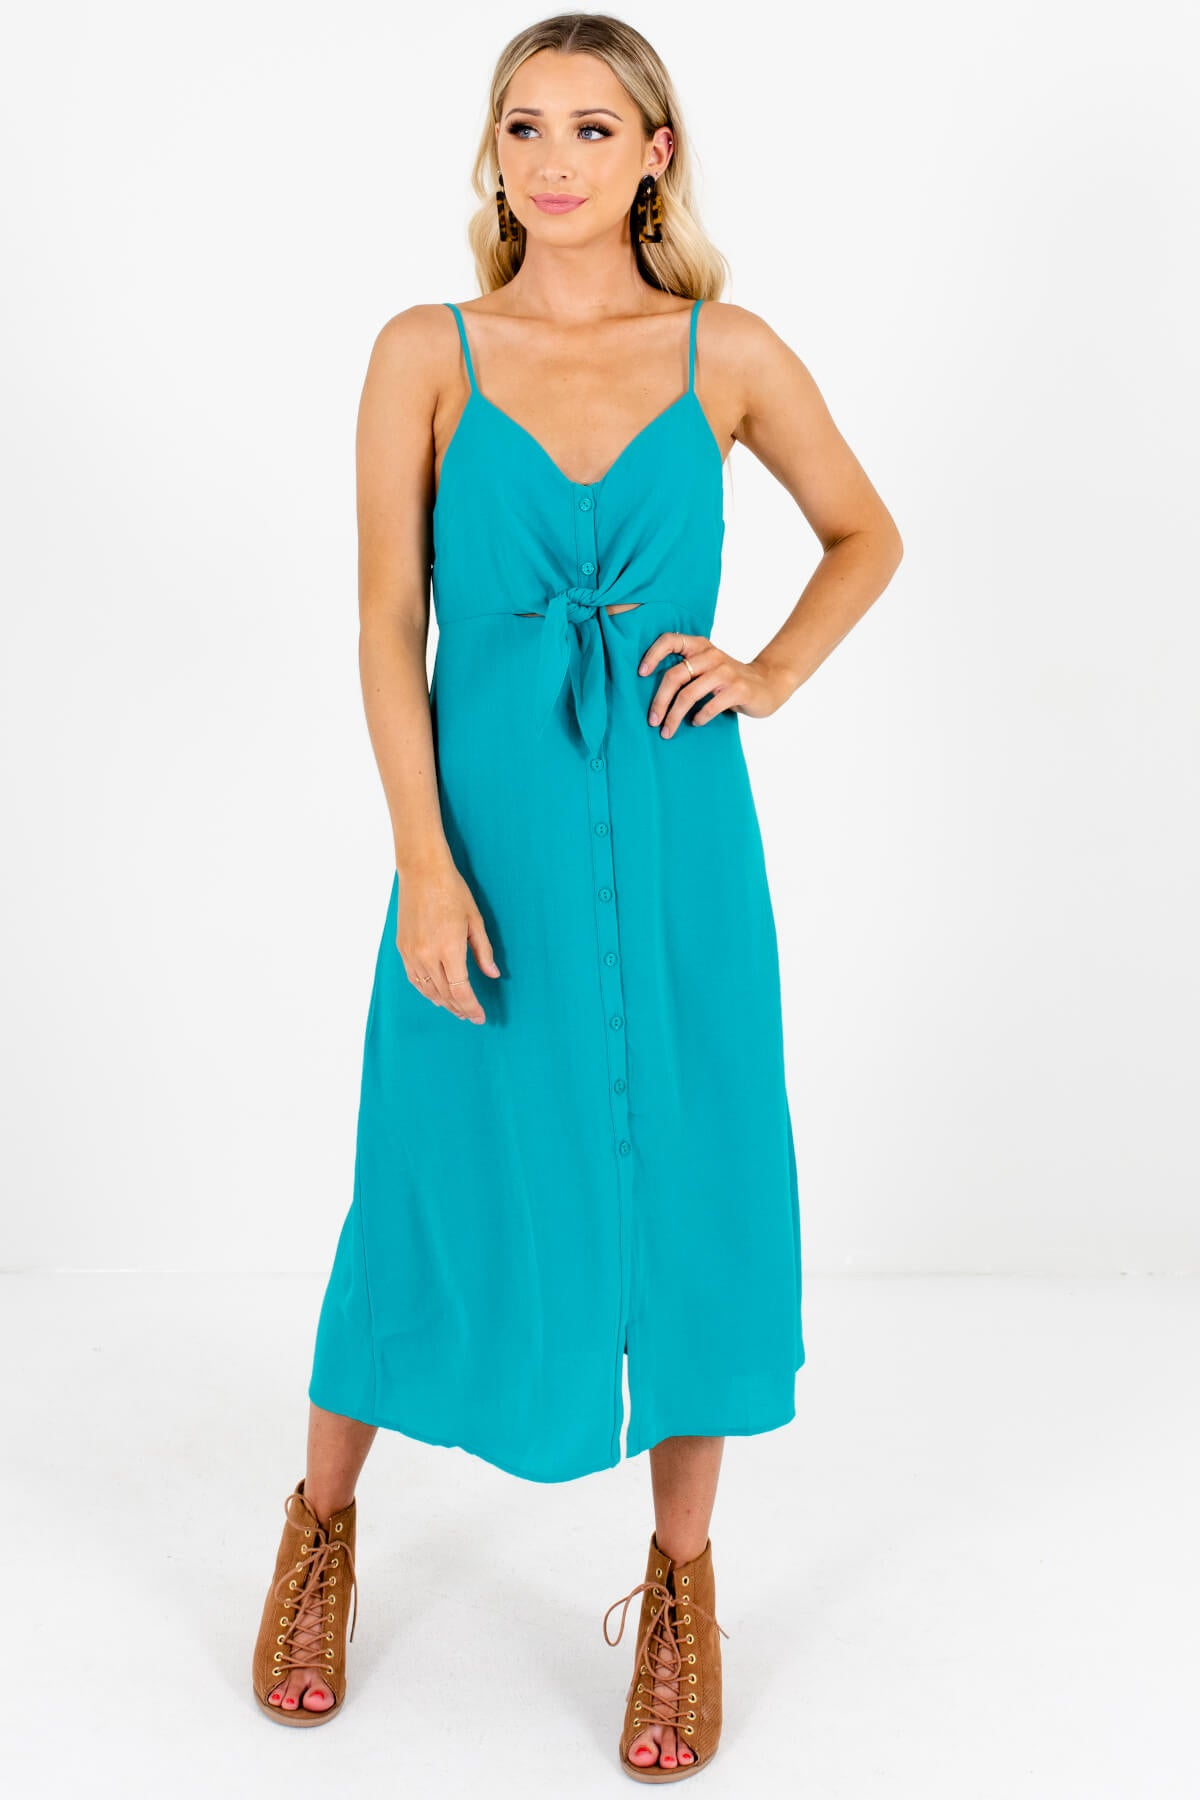 Turquoise Teal Green Button-Up Tie-Front Midi Dresses for Women